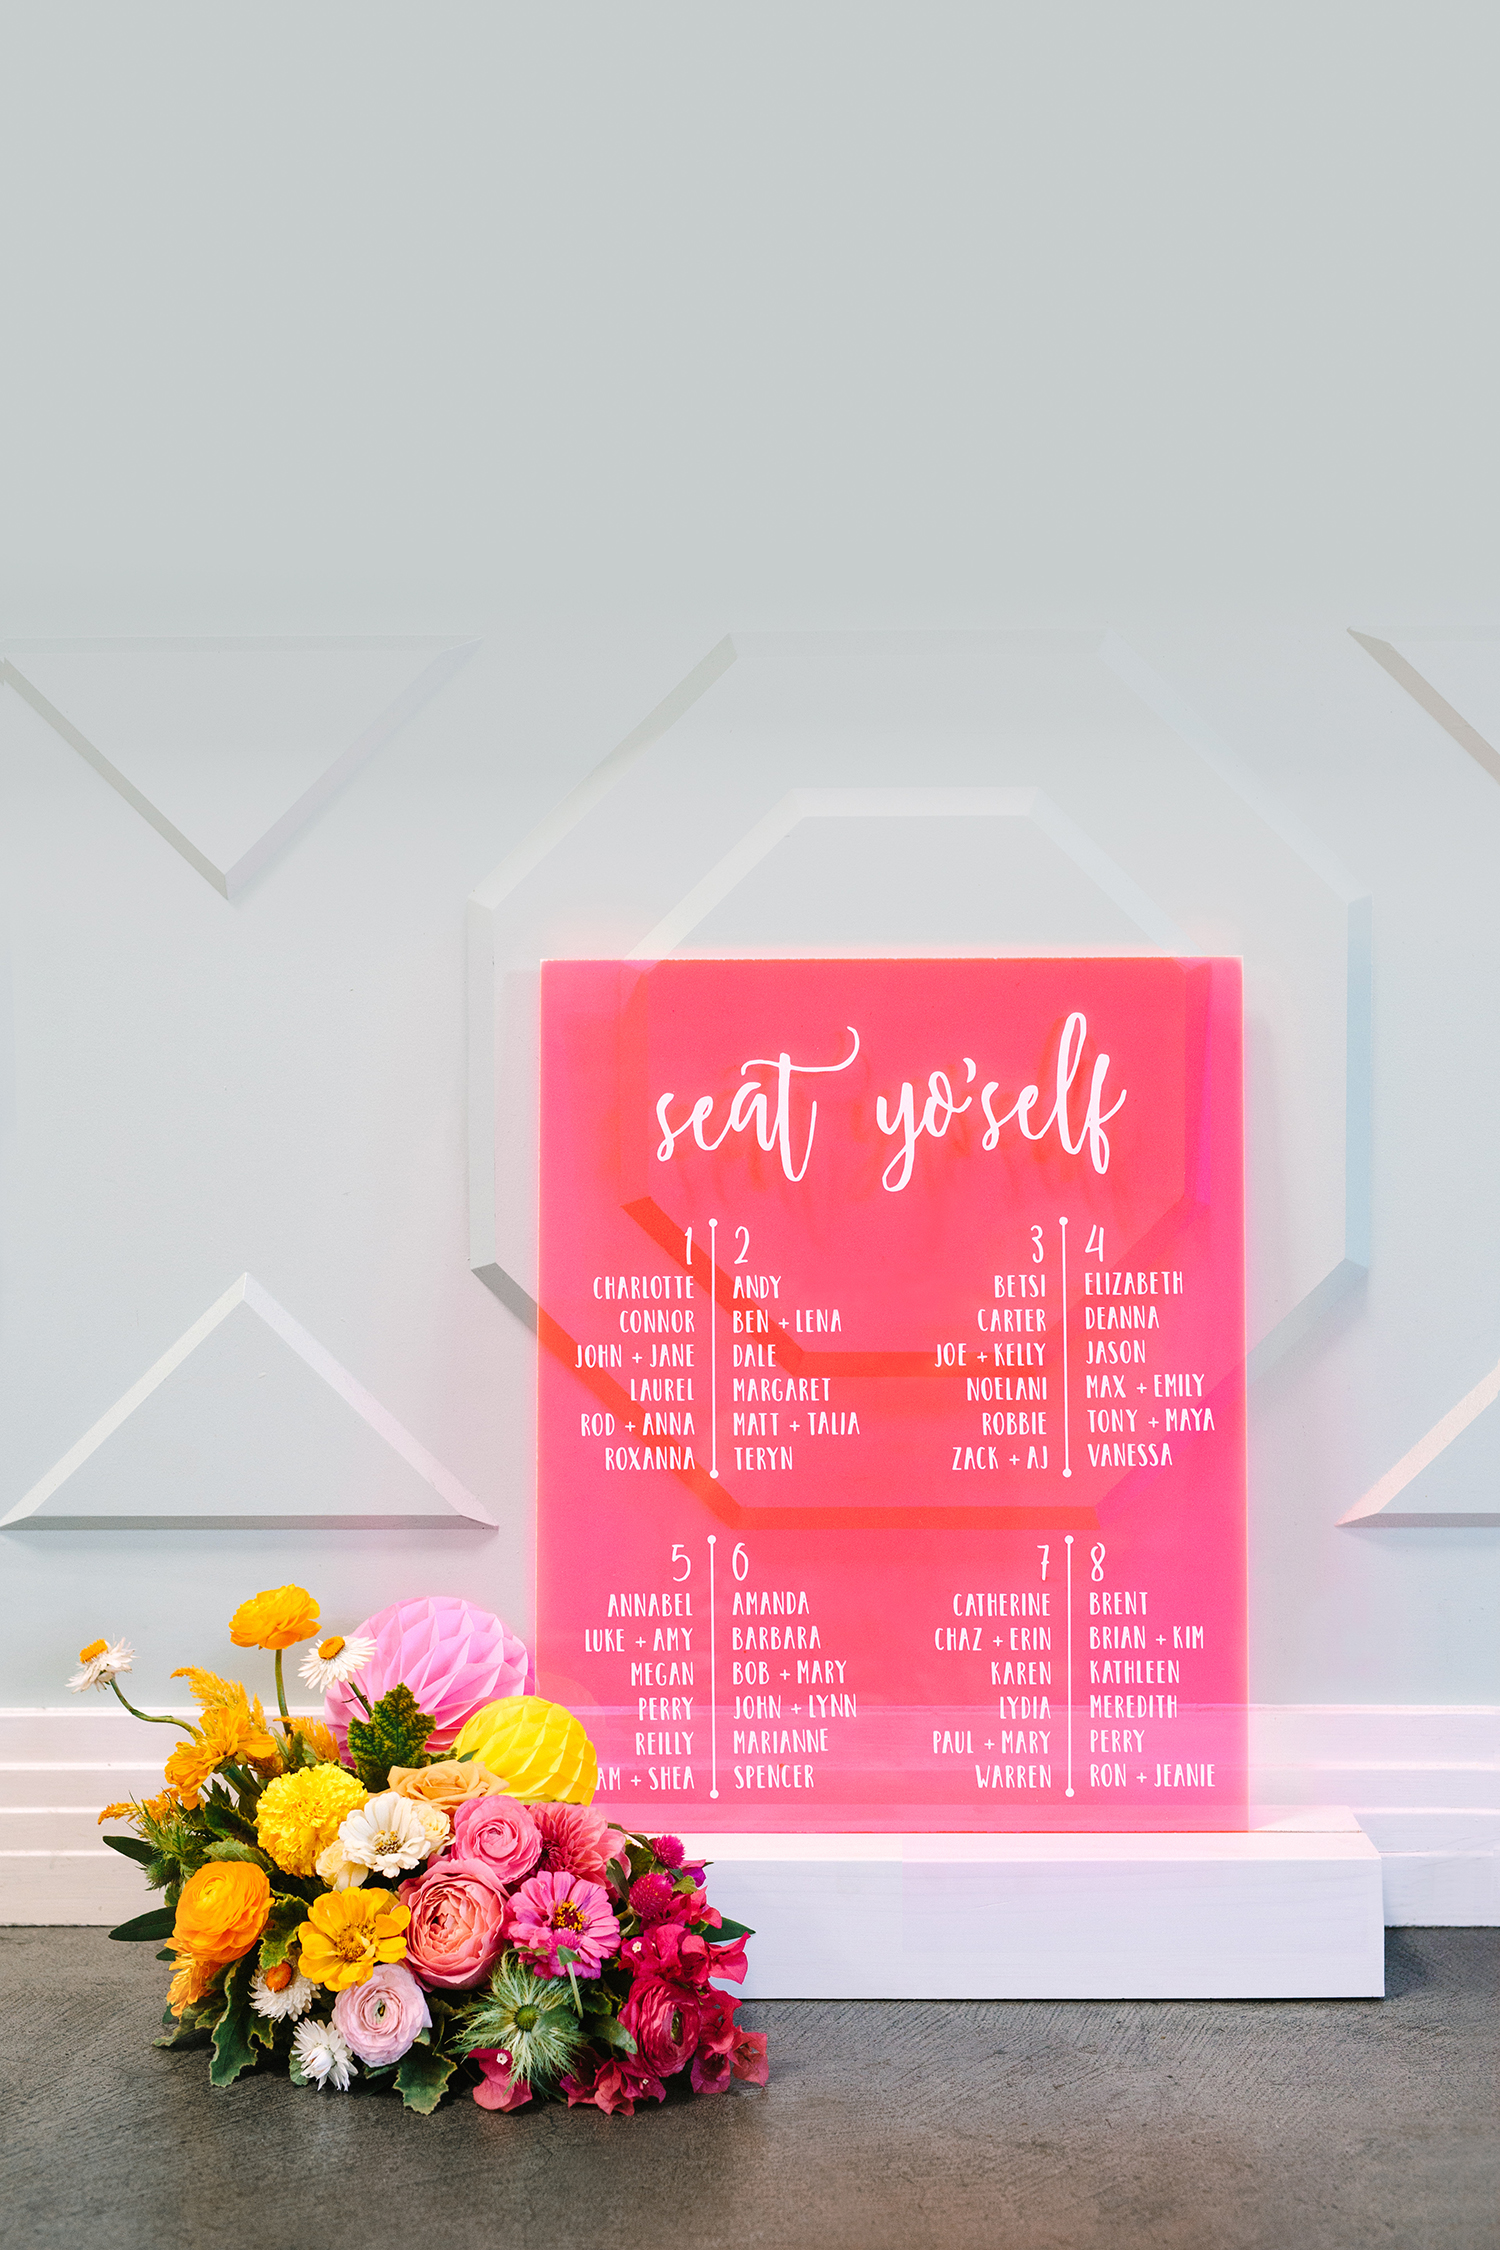 neon pink seat yourself sign